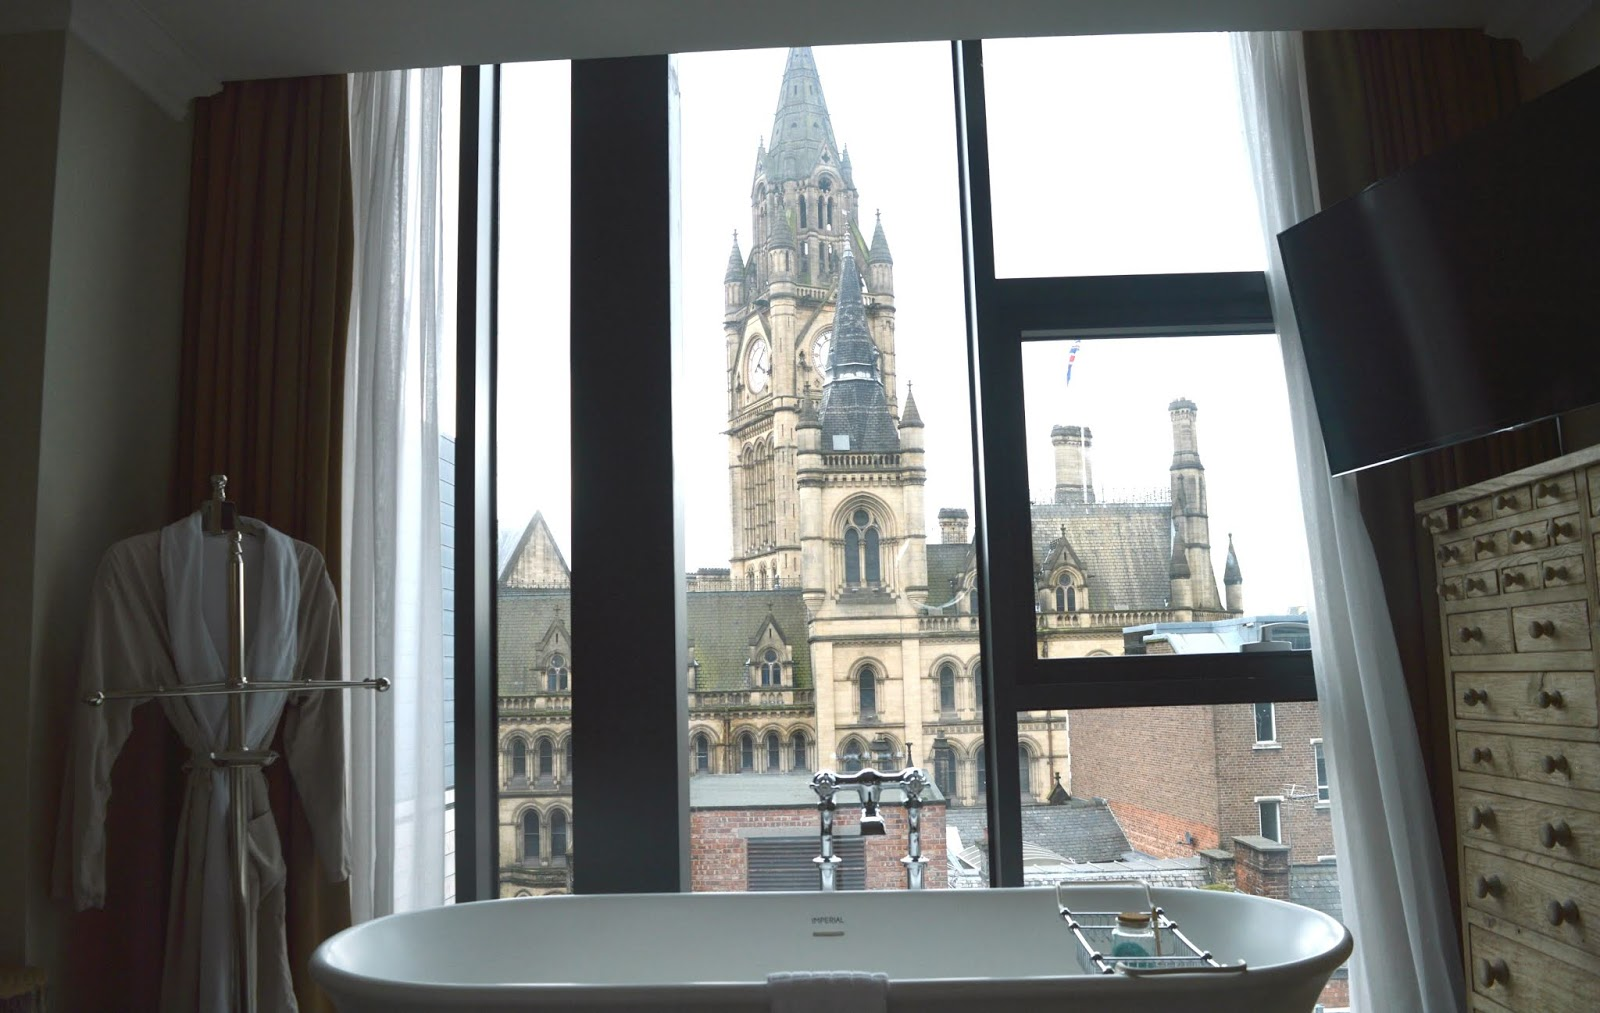 Luxury Suite at King Street Townhouse, Manchester - Hotel Review